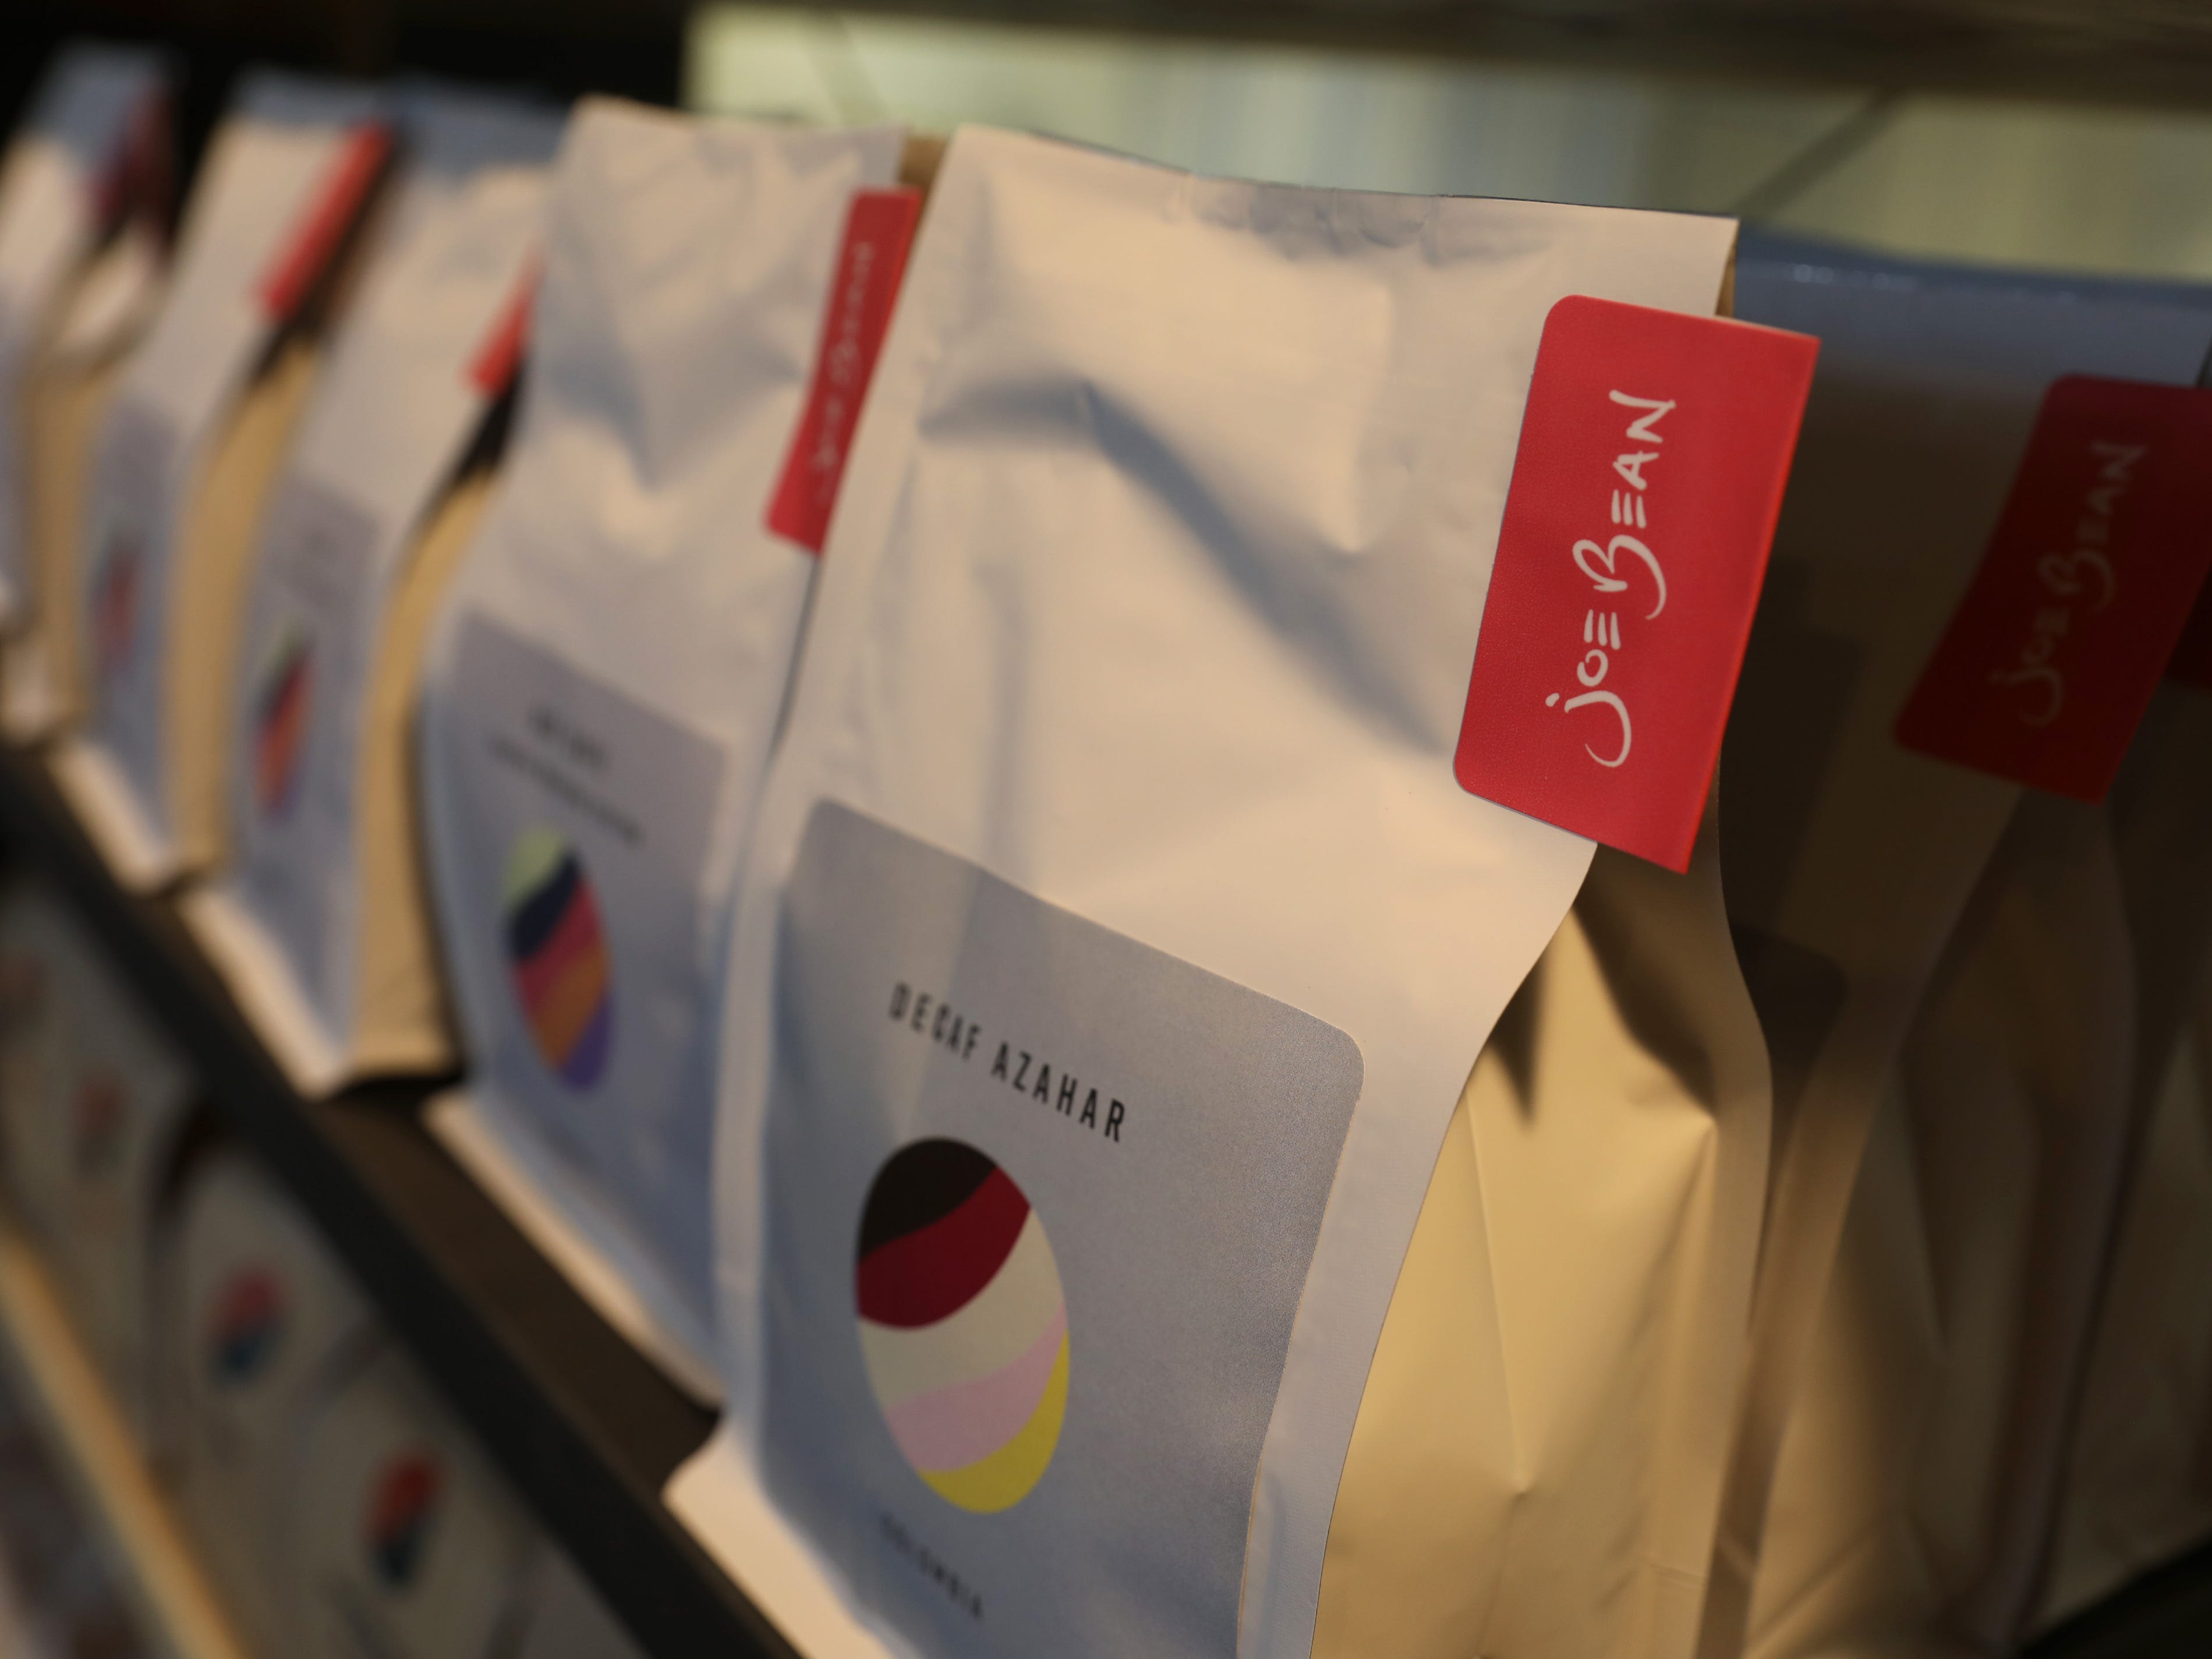 Bags of roasted coffee beans are offered for purchase.